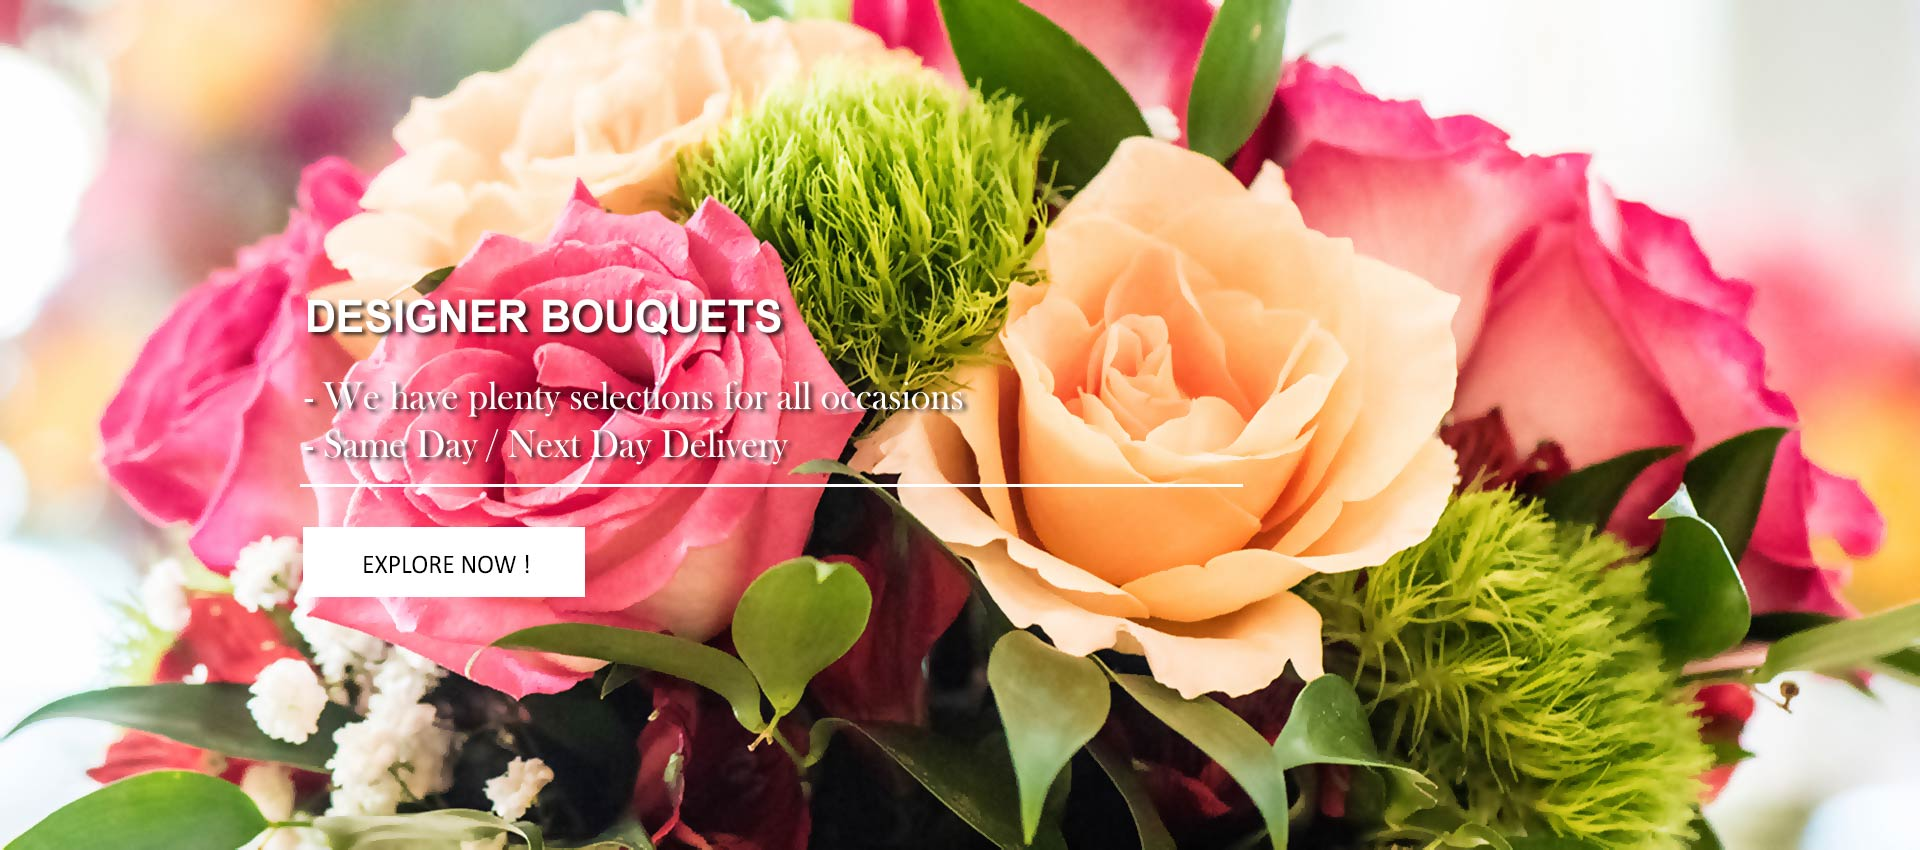 Designer Bouquet | Fresh Flowers Bouquet for all occasions | Roses, Lilies, Gerberas, Orchids, Tulips, Sunflowers, Carnations | Myflowerflorist.com